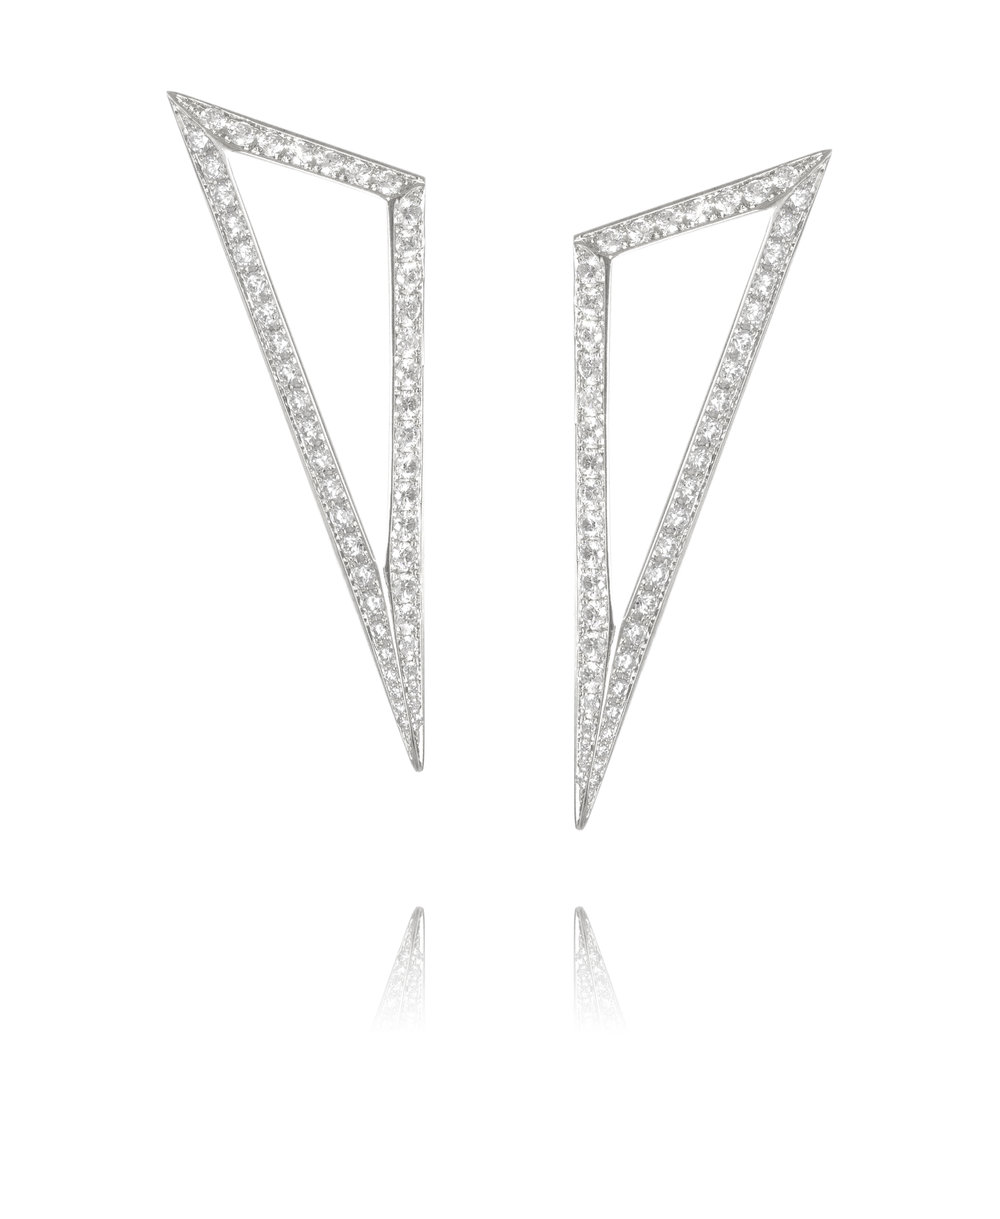 Earrings  18KT White Gold, Diamonds  REF. MOT145